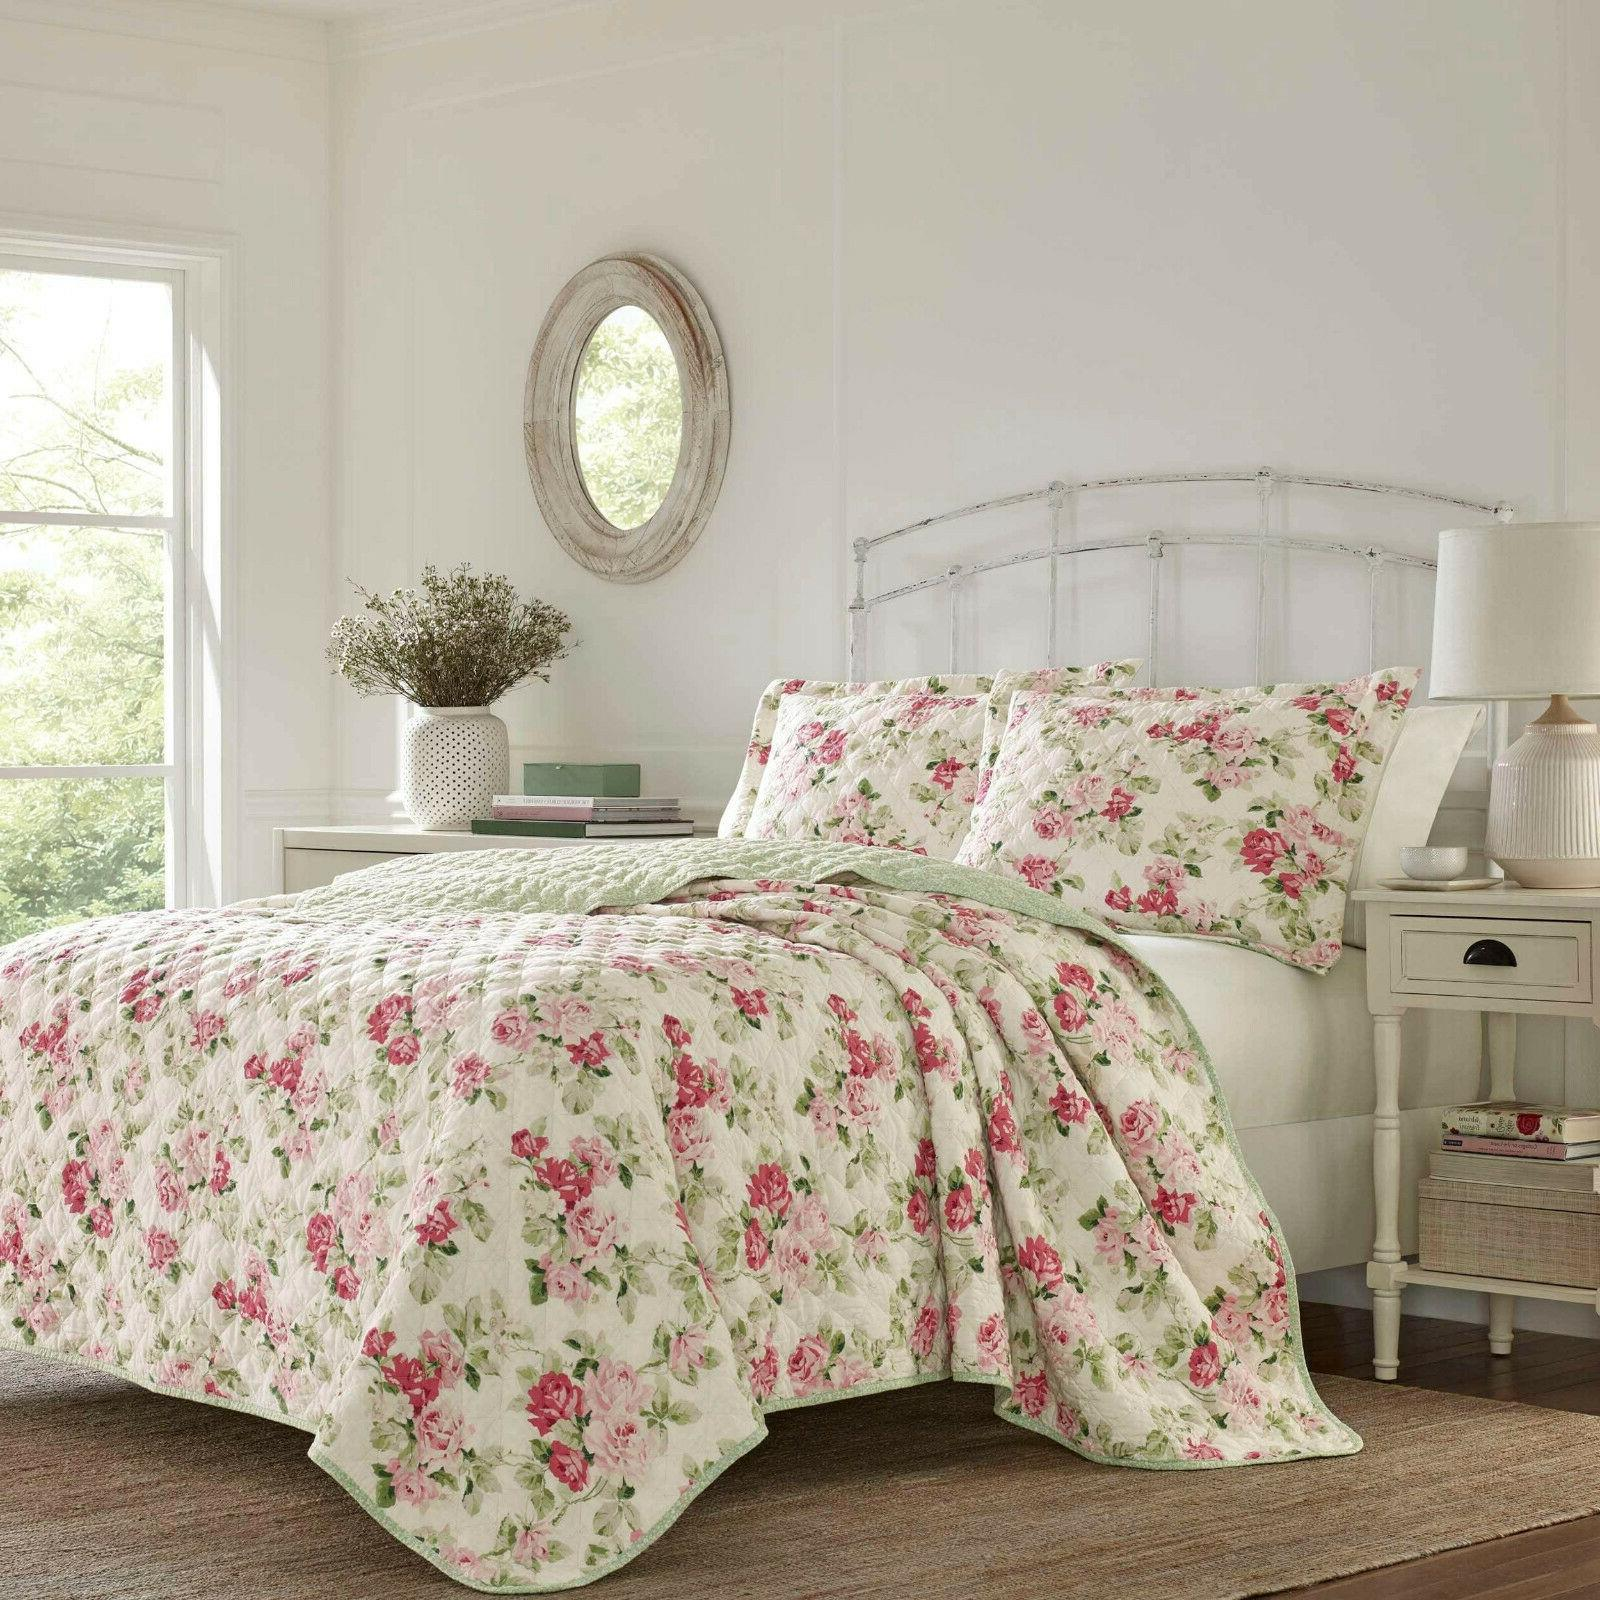 Laura Ashley Shabby Chic Floral Printed Pink,Green 3-PC Cott